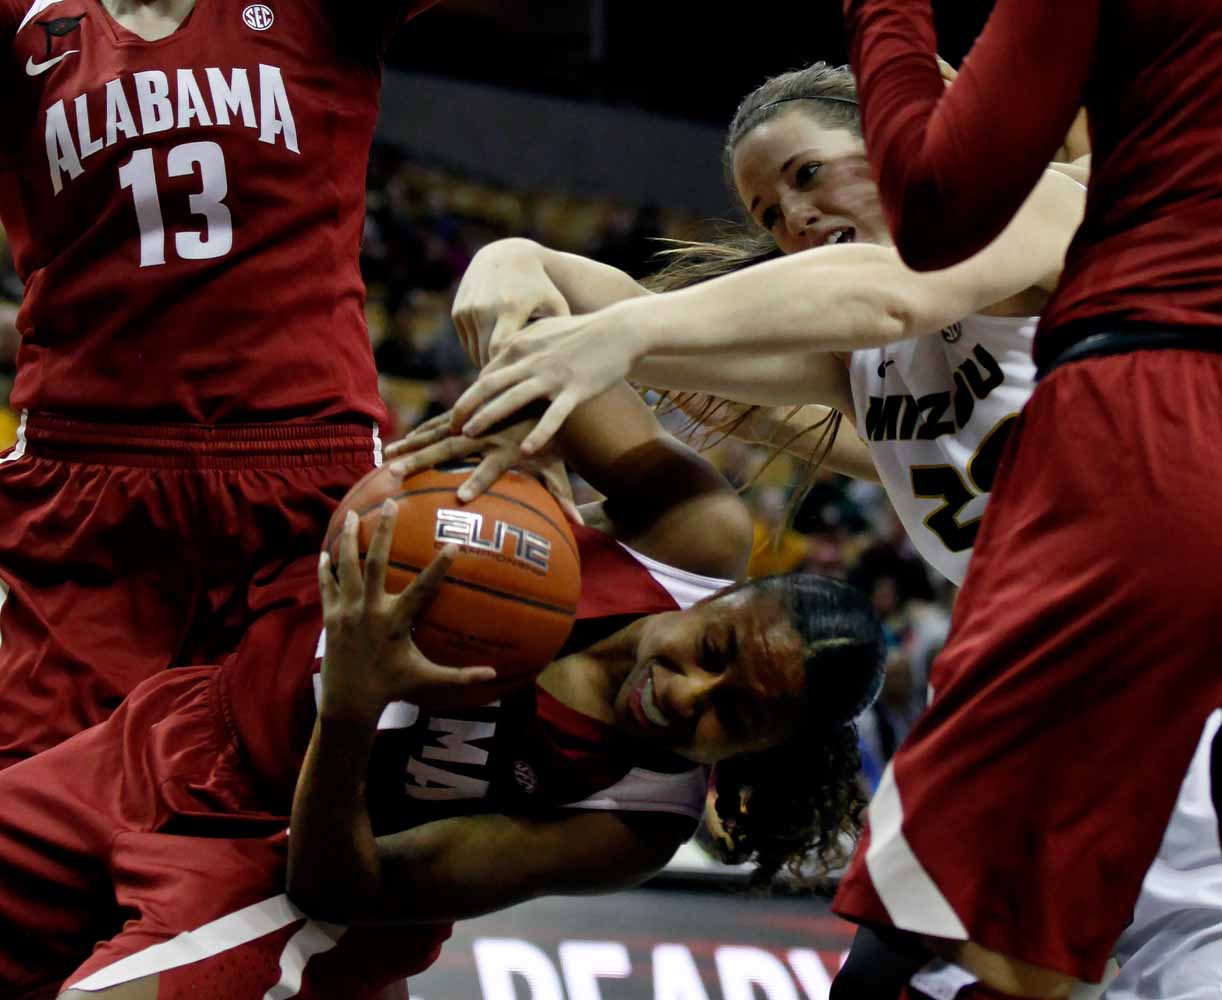 Alabama's sophomore guard Karyla Middlebrook (22) tries to steal the ball away from Missouri's redshirt sophomore forward Kayla McDowell (20) during the second half of the game Thursday evening, Feb. 11, 2016 at Mizzou Arena.